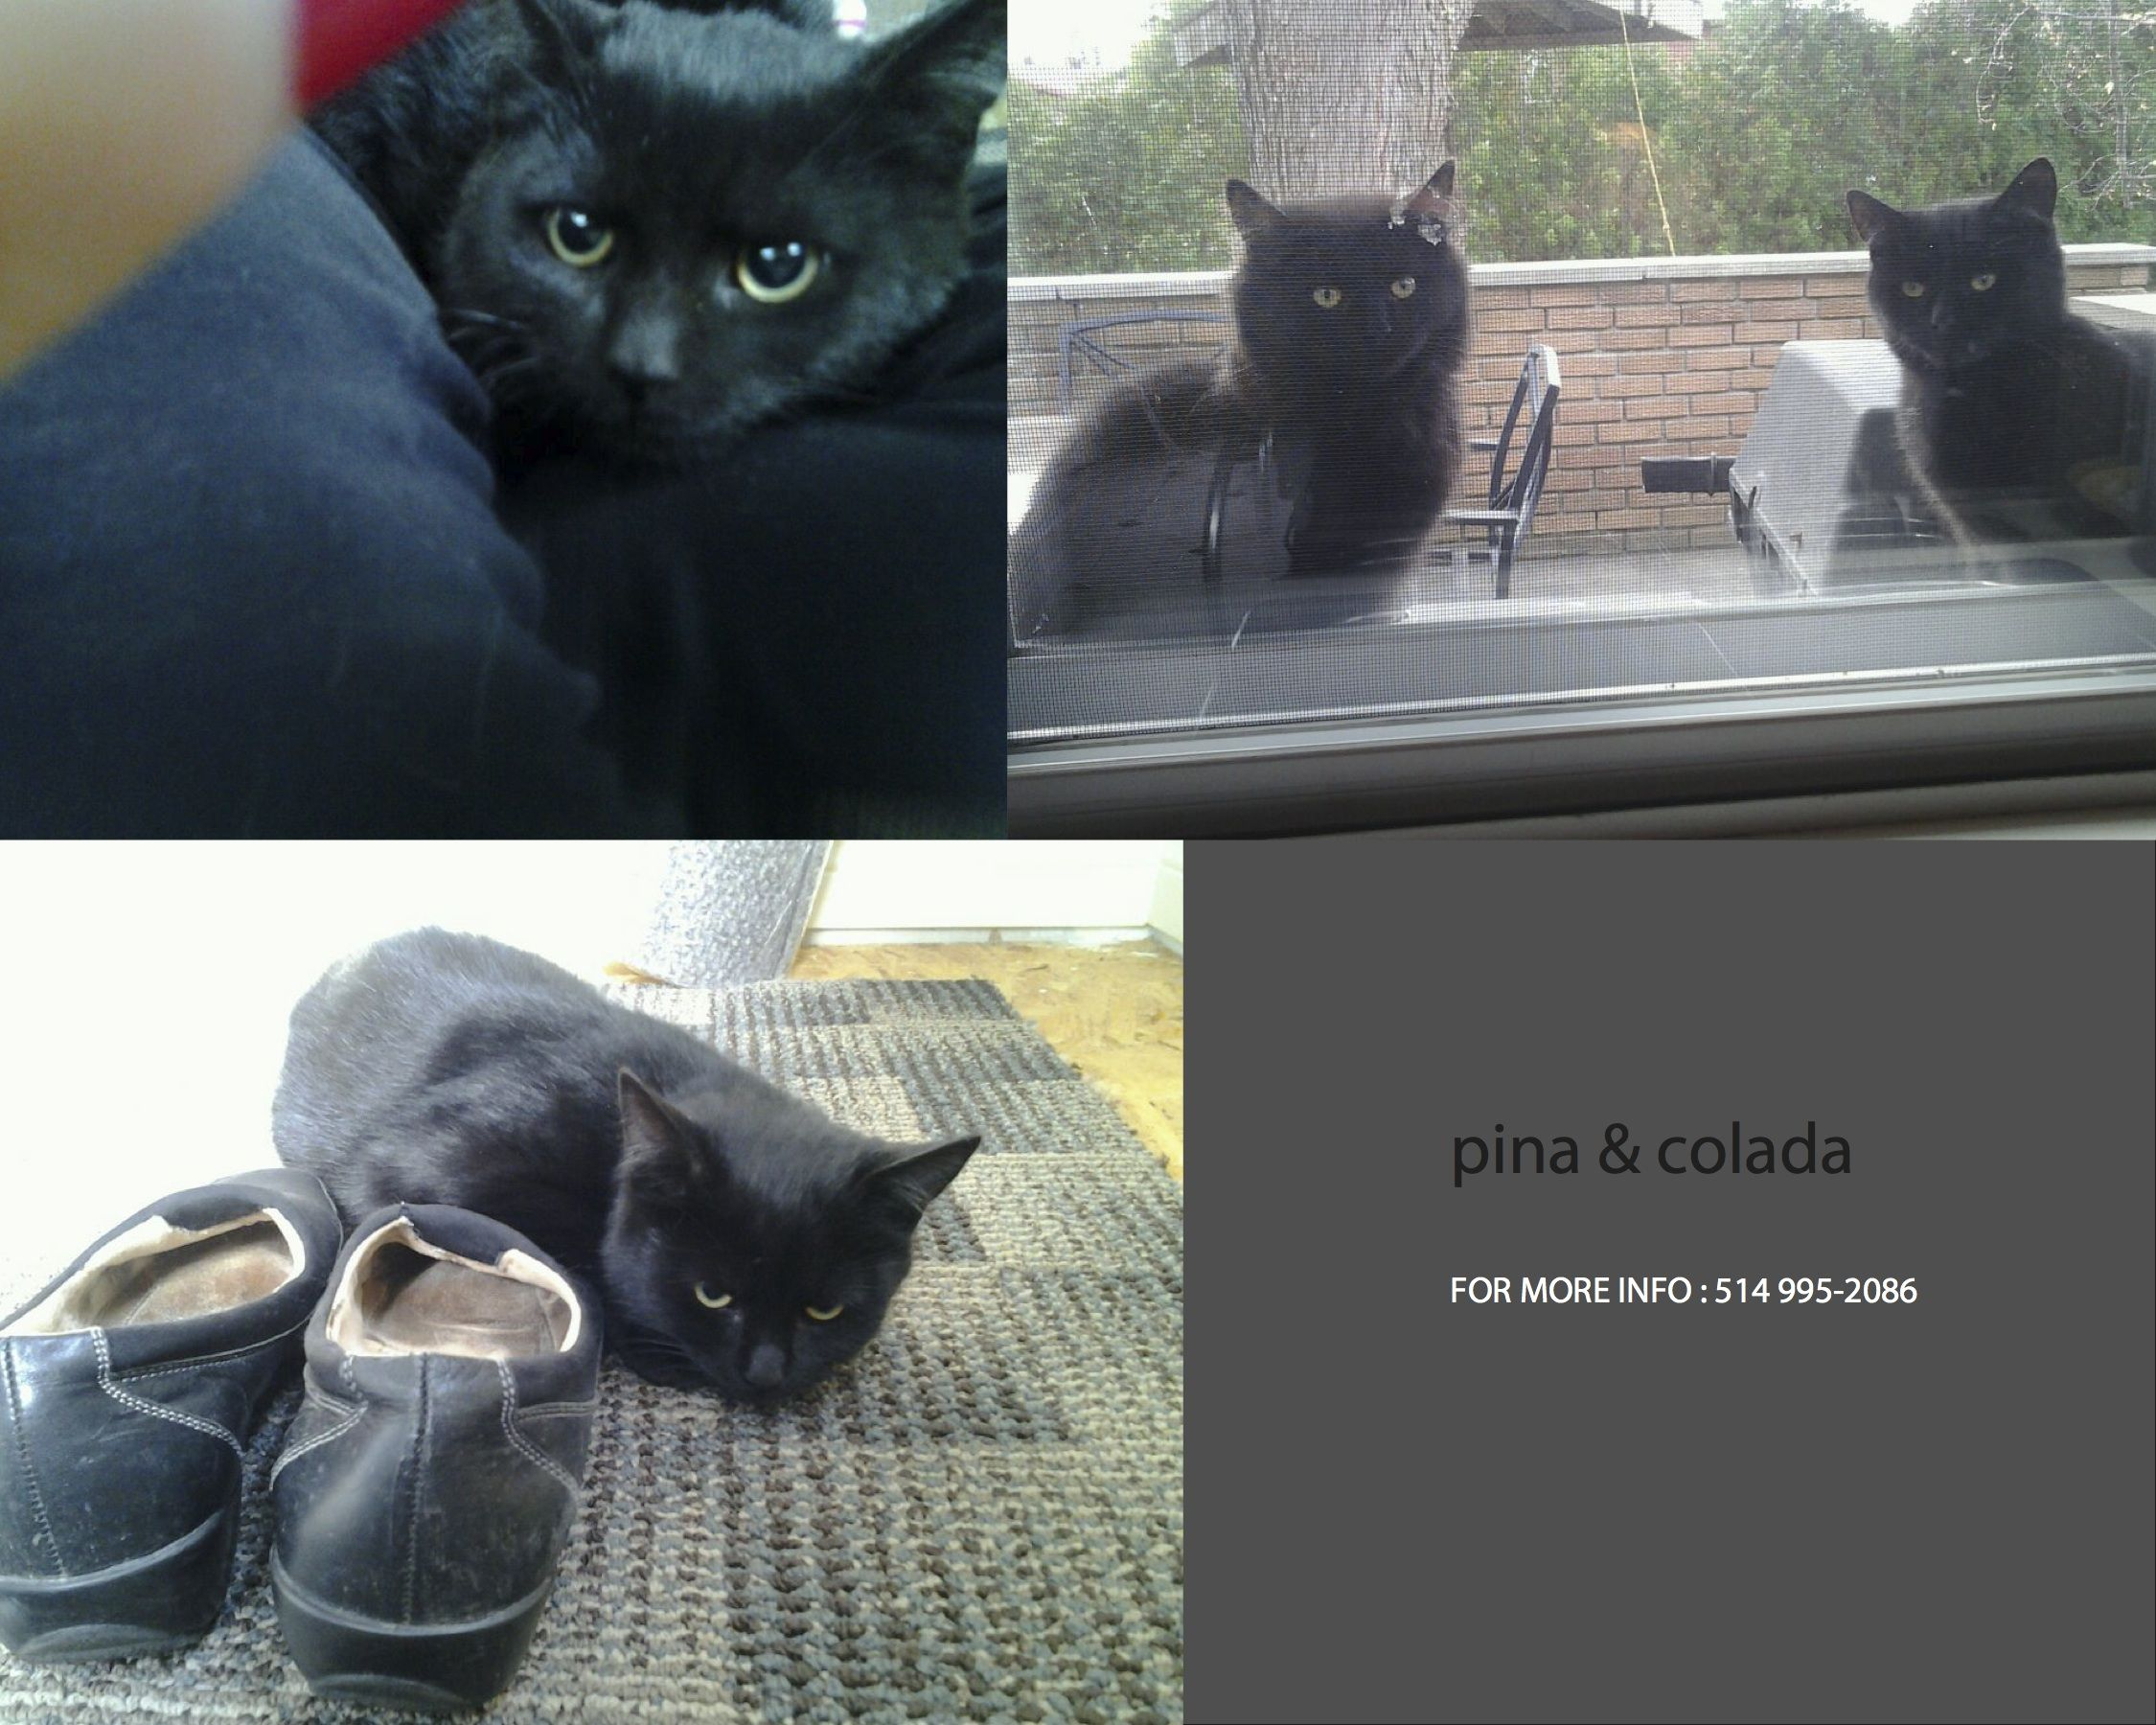 Urgent Foster Or Forever Home Needed For Pina And Colada In Montreal Www Facebook Com Cause4paws 3 Cat Adoption Animals Animal Rescue